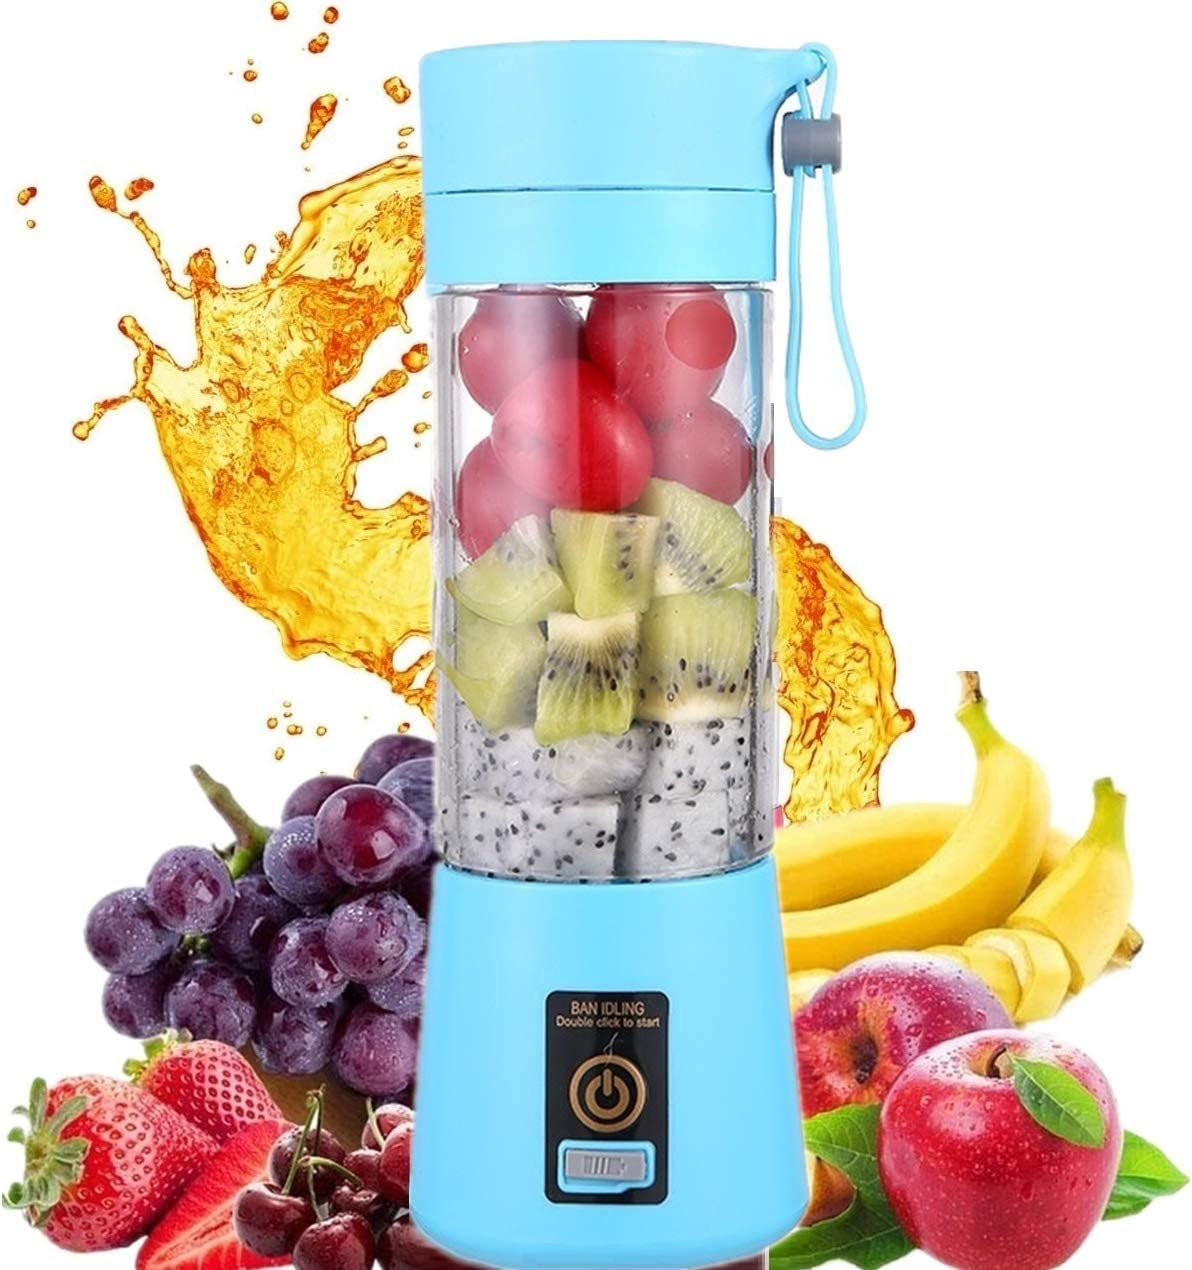 HANBO Electric Portable Juicer Blender Cup, Household Fruit Mixer with Six Blades in 3D, 380ml USB Rechargeable Juice Blender Magnetic Secure Switch Electric Fruit Mixer (Light Blue)